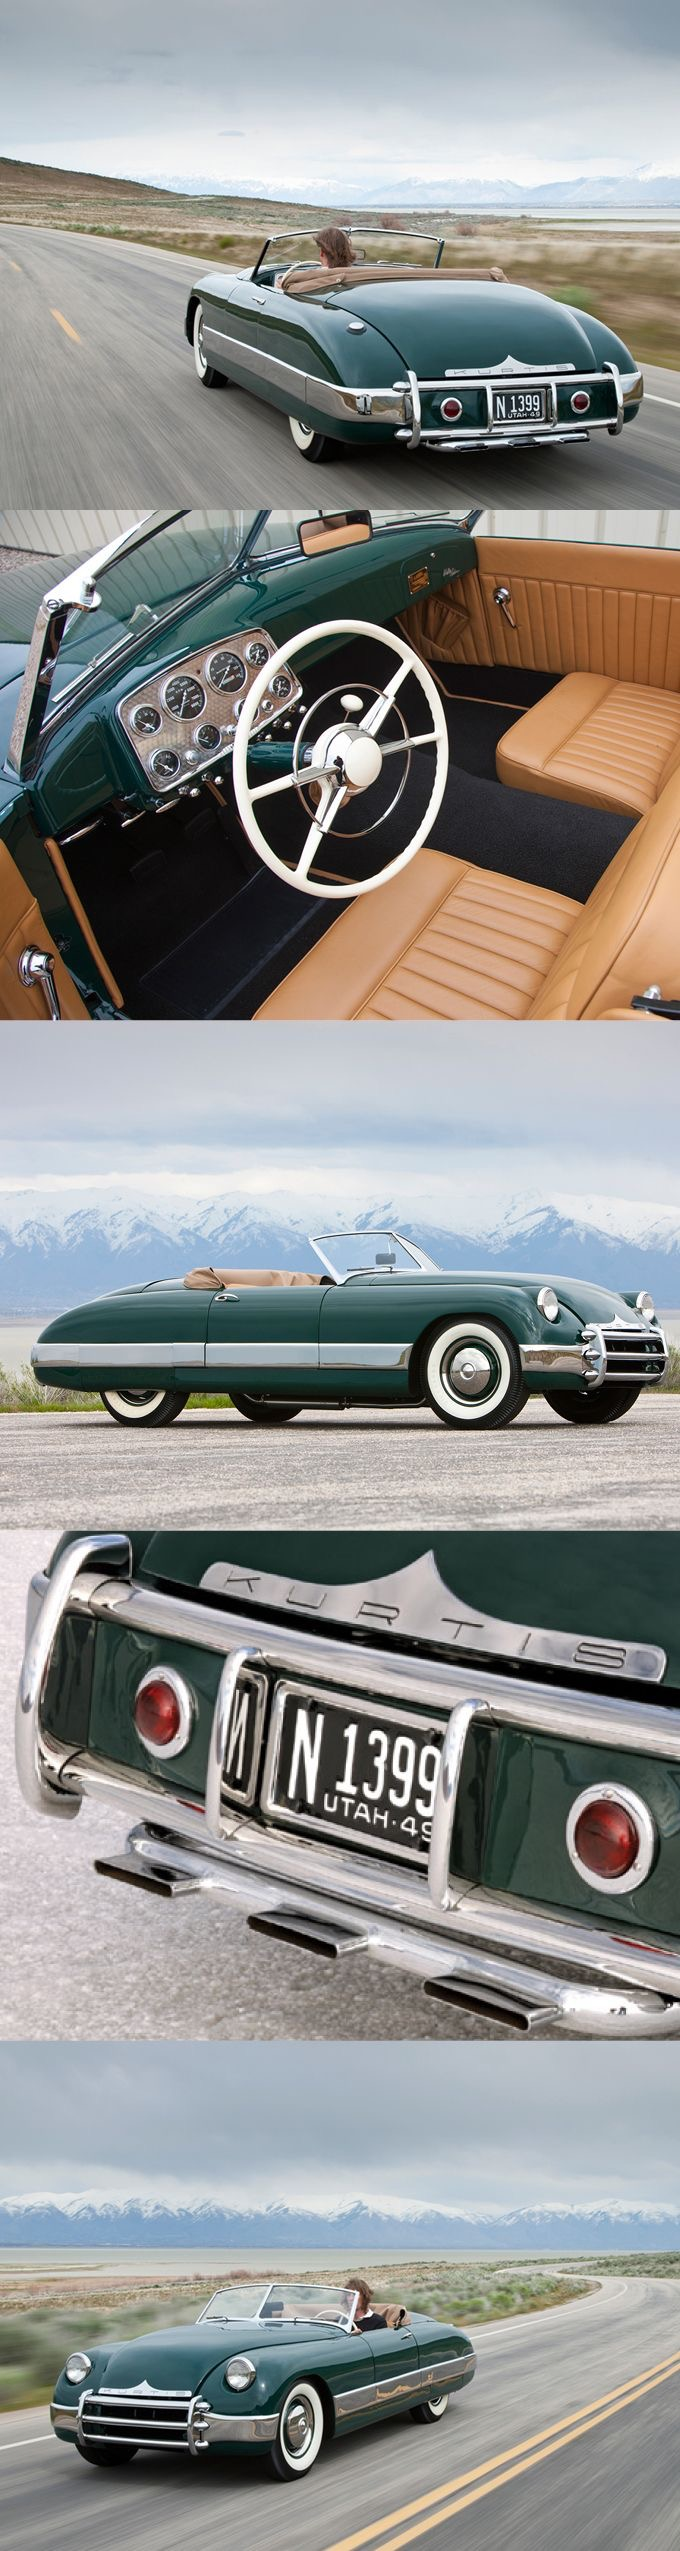 Kurtis Is My Aesthetic Green Aesthetic Vintagecars Cars